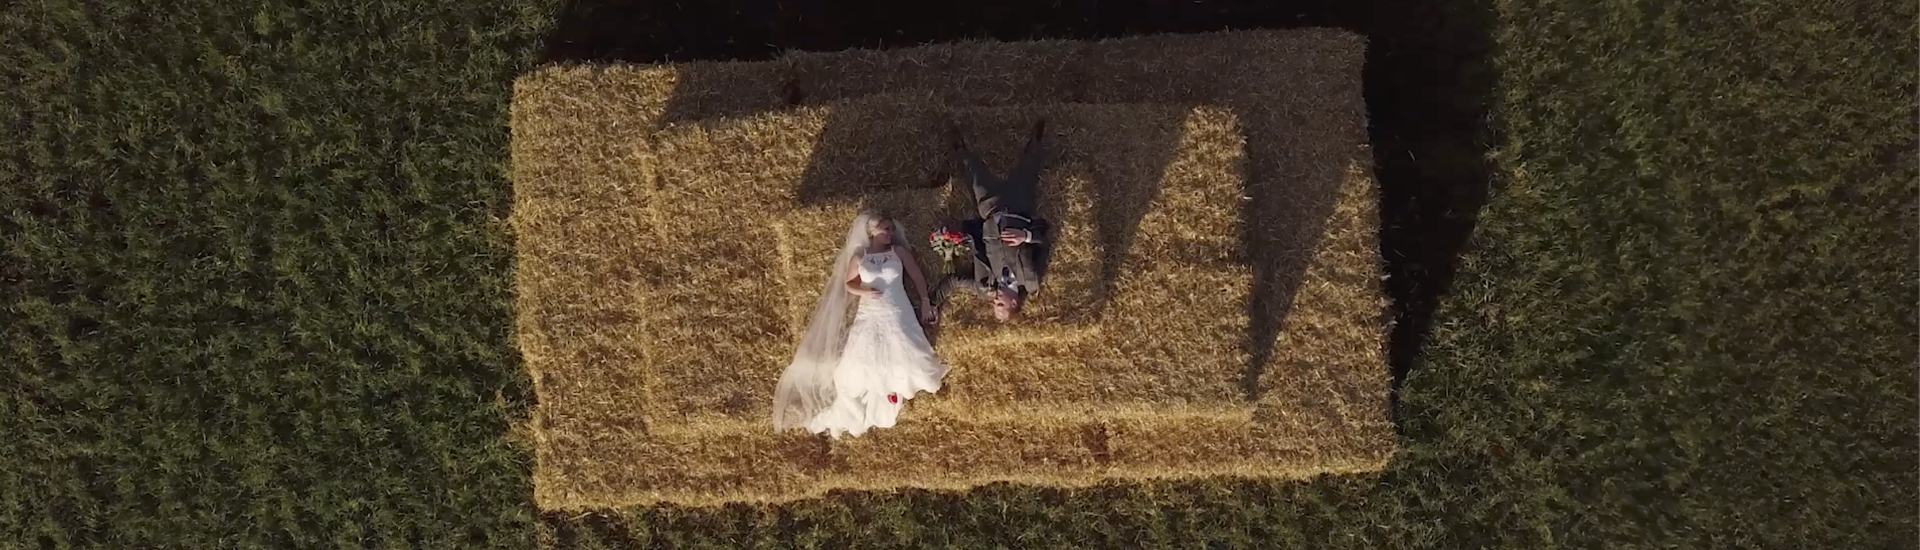 Somerset Farm Wedding Video